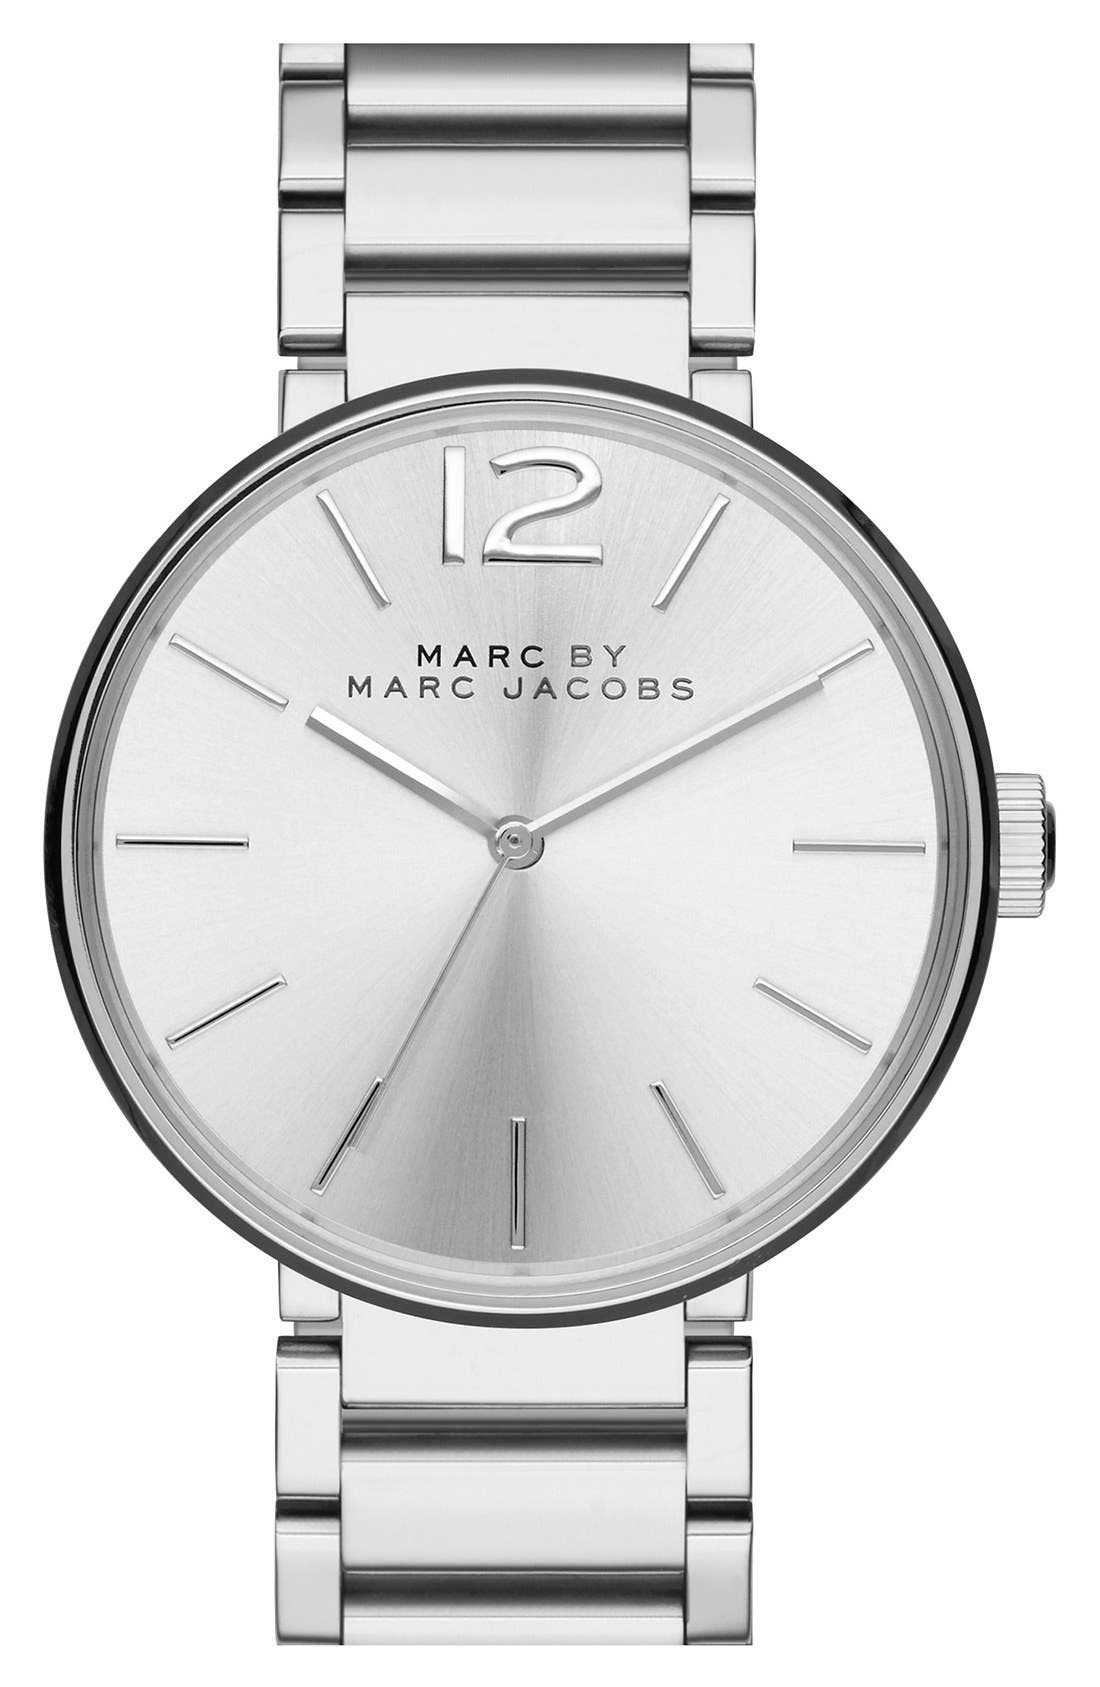 Alternate Image 1 Selected - MARC JACOBS 'Peggy' Bracelet Watch, 36mm